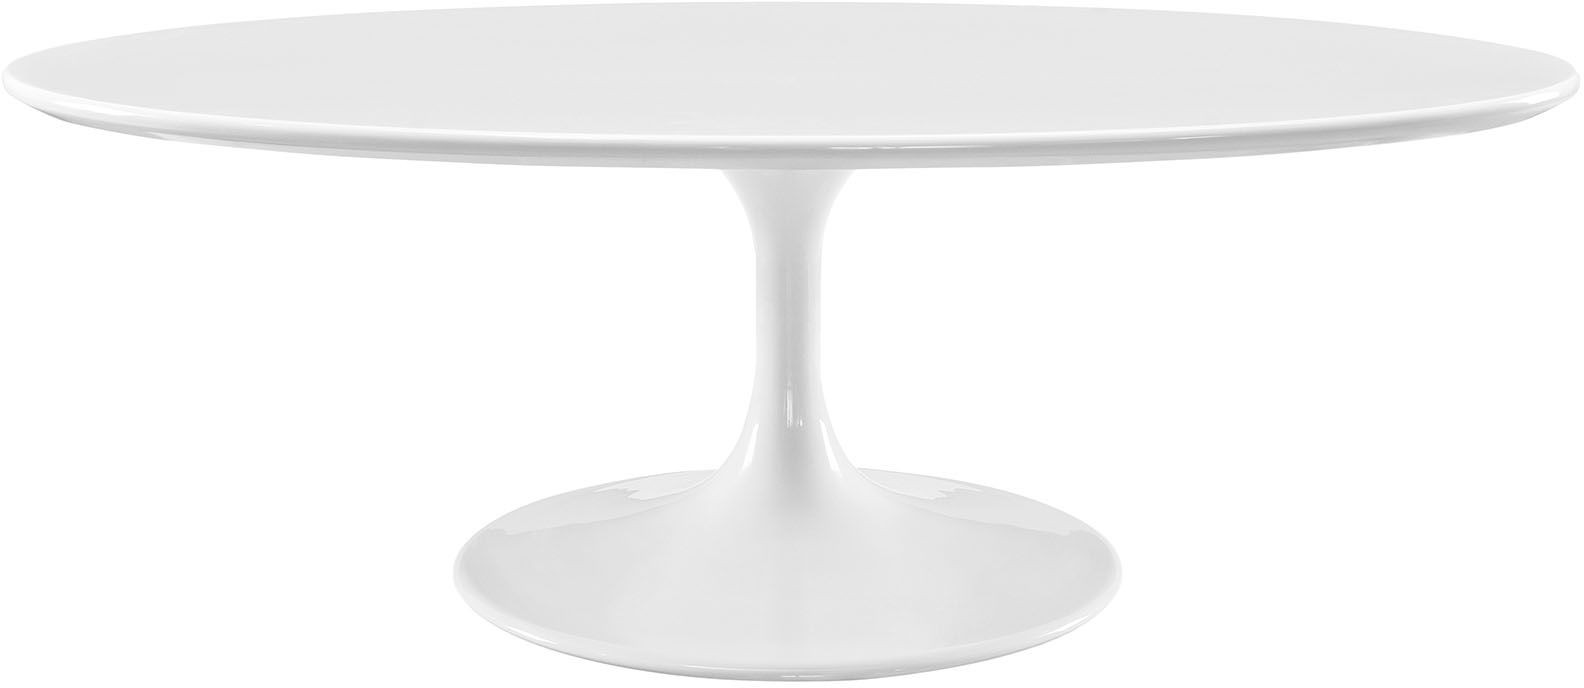 Lippa white 48 oval shaped wood top coffee table from renegade coleman furniture Oval shaped coffee table